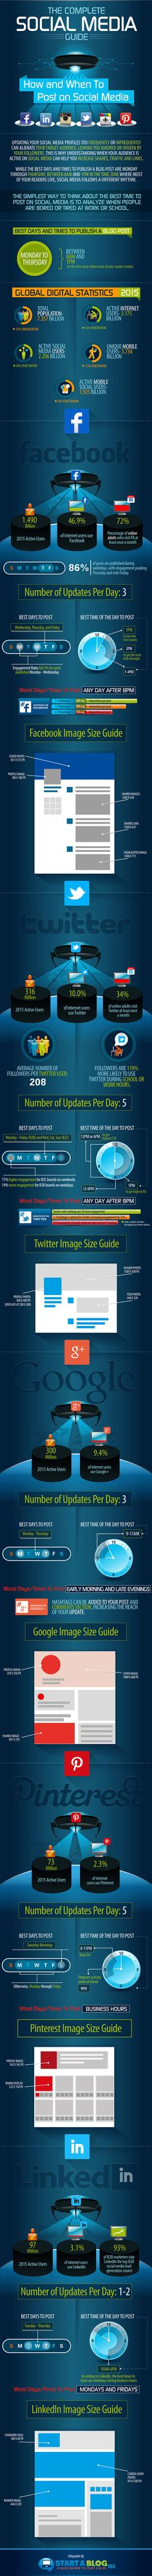 When and How to Update Your Social Media [Infographic]